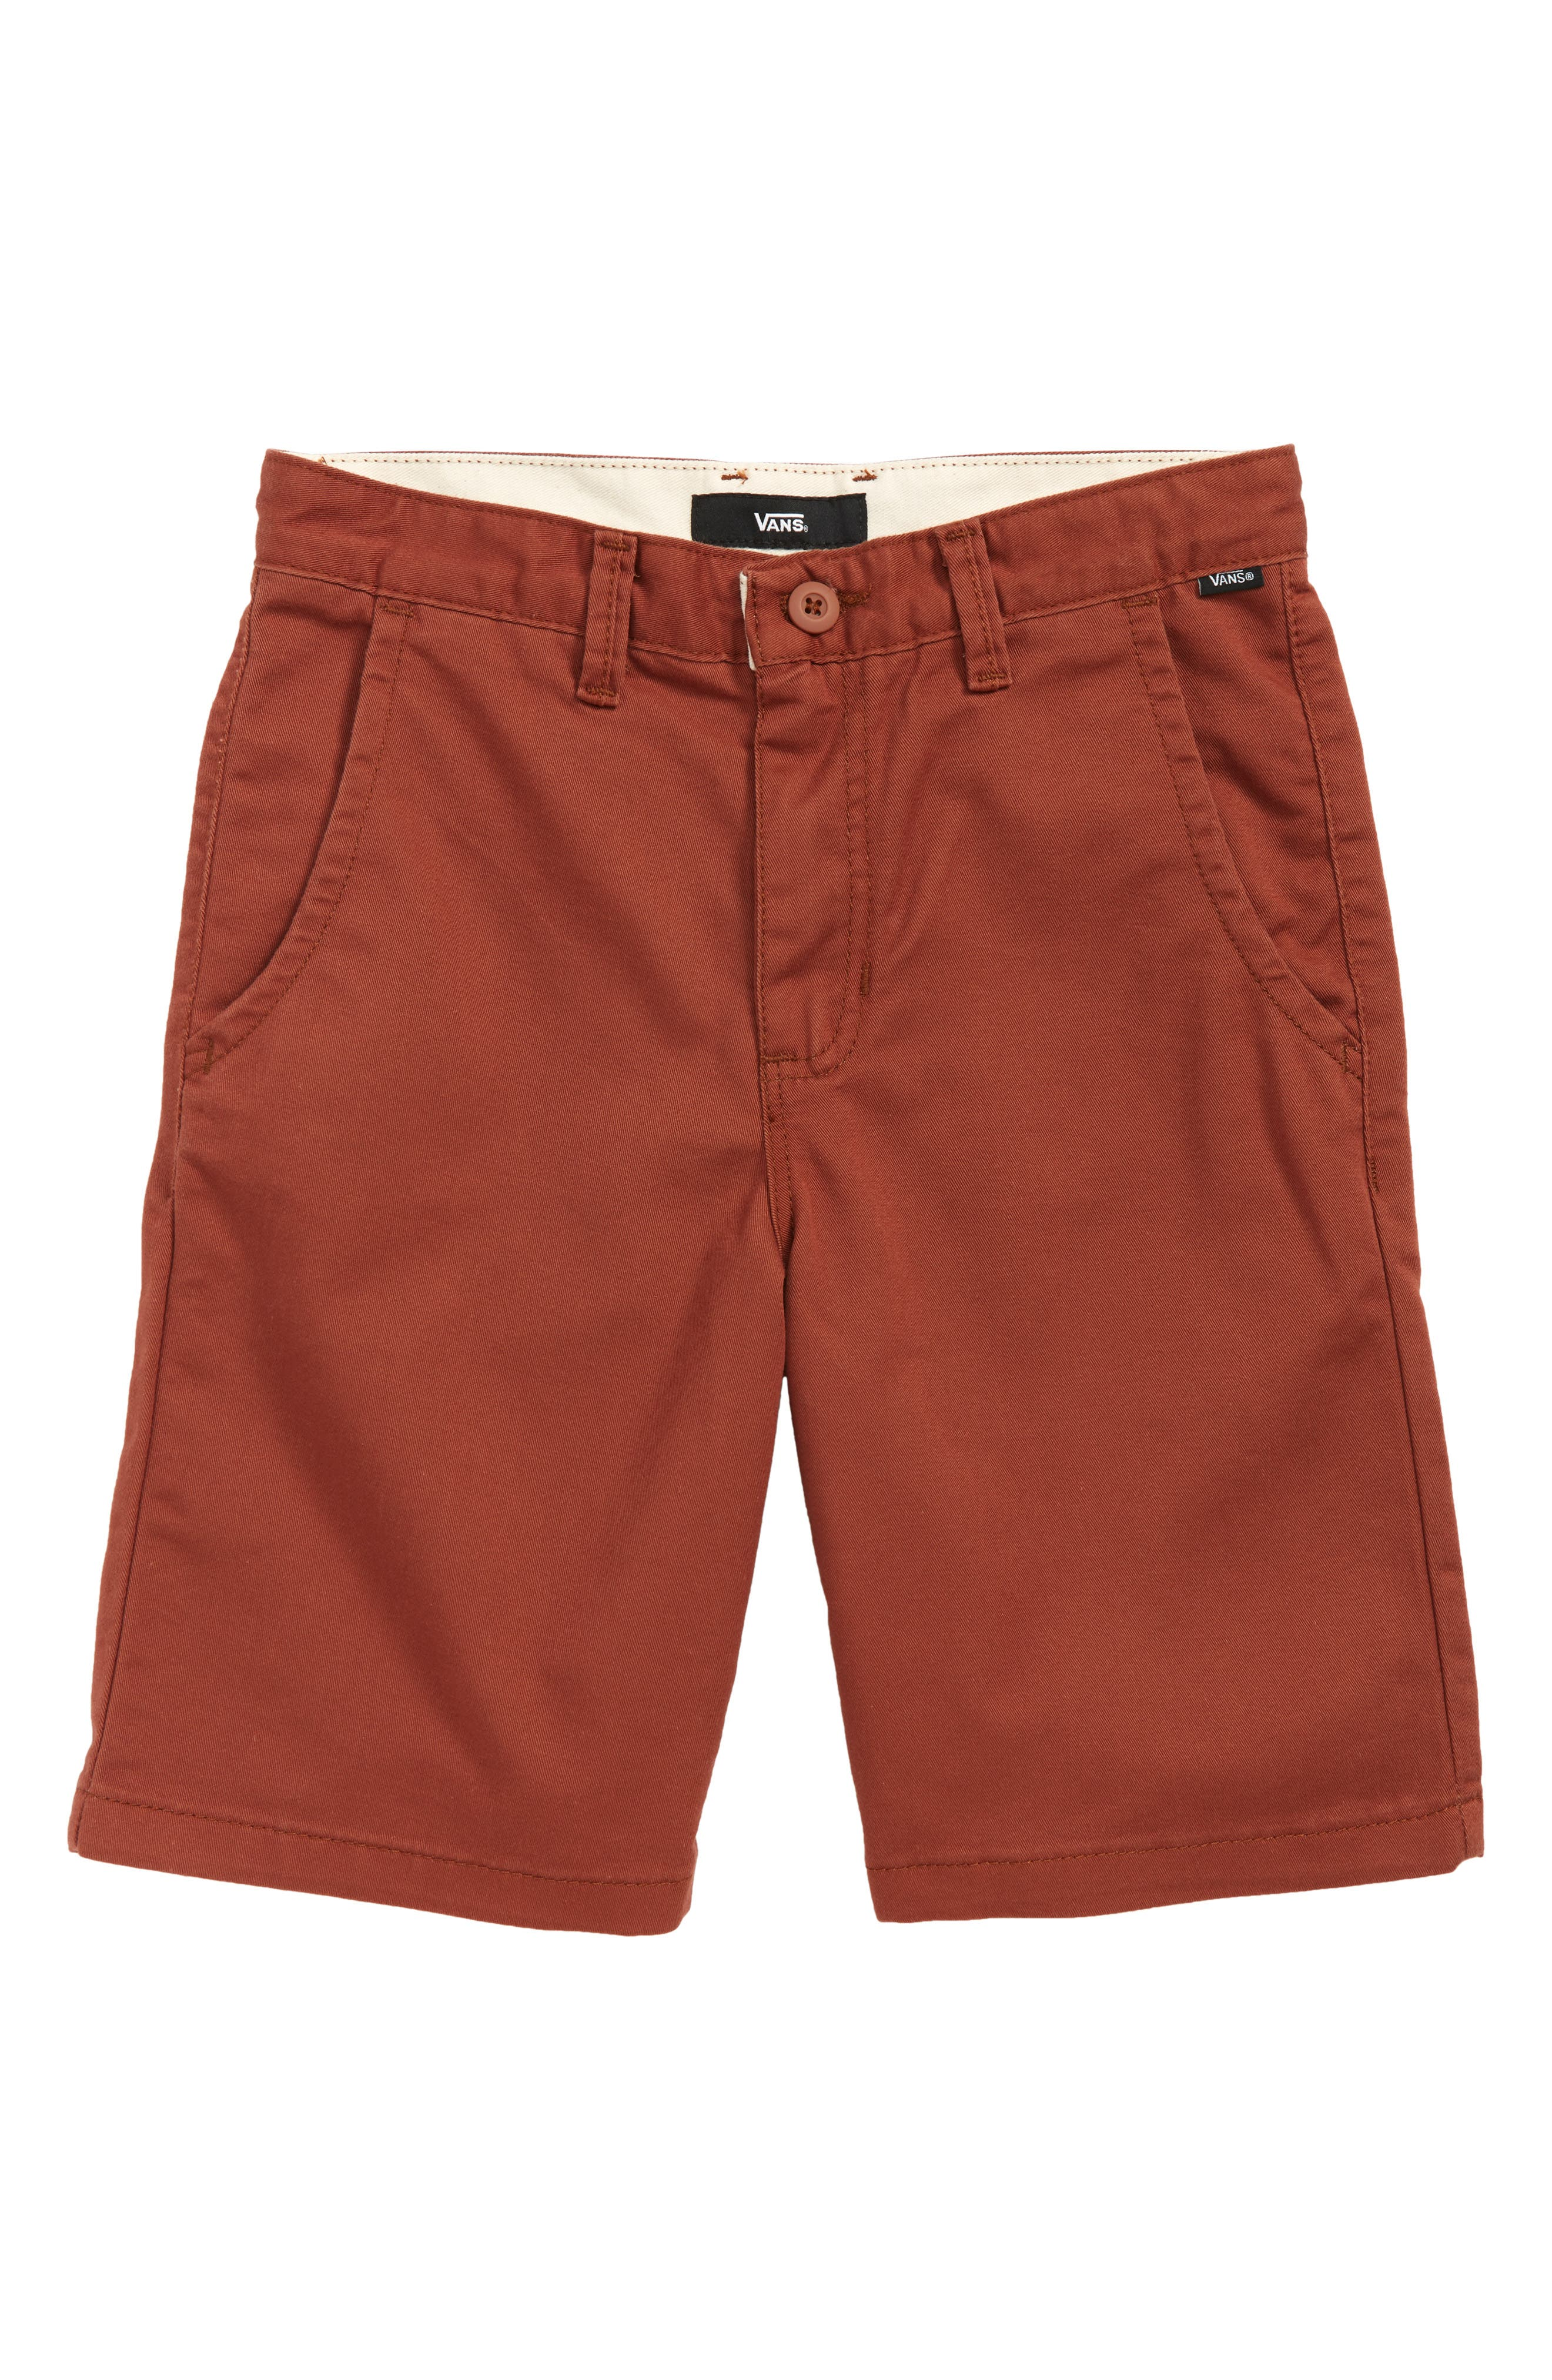 Authentic Stretch Twill Shorts,                         Main,                         color, 210